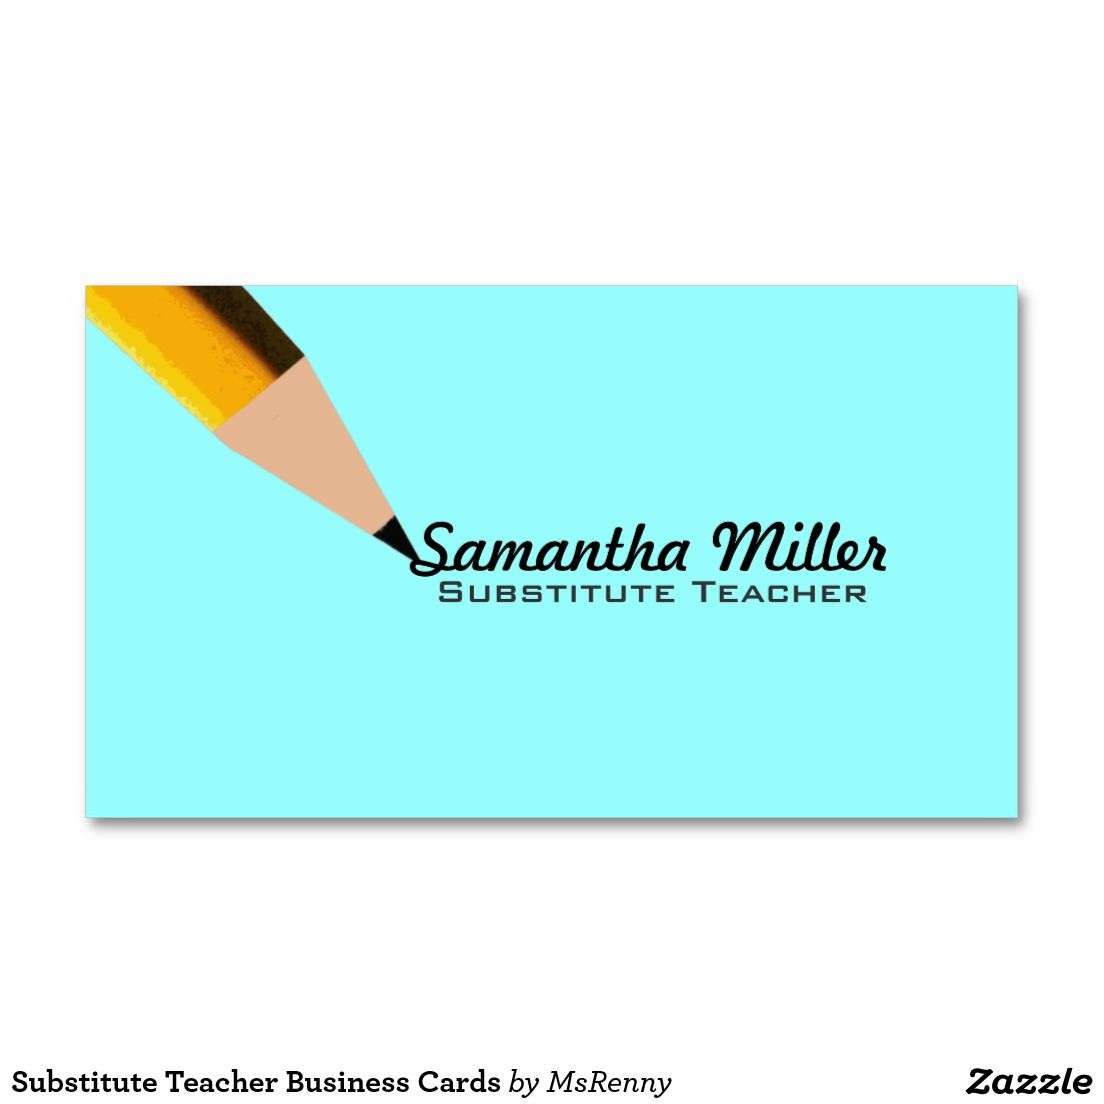 Substitute Teacher Business Cards | work tips | Pinterest | Teacher ...